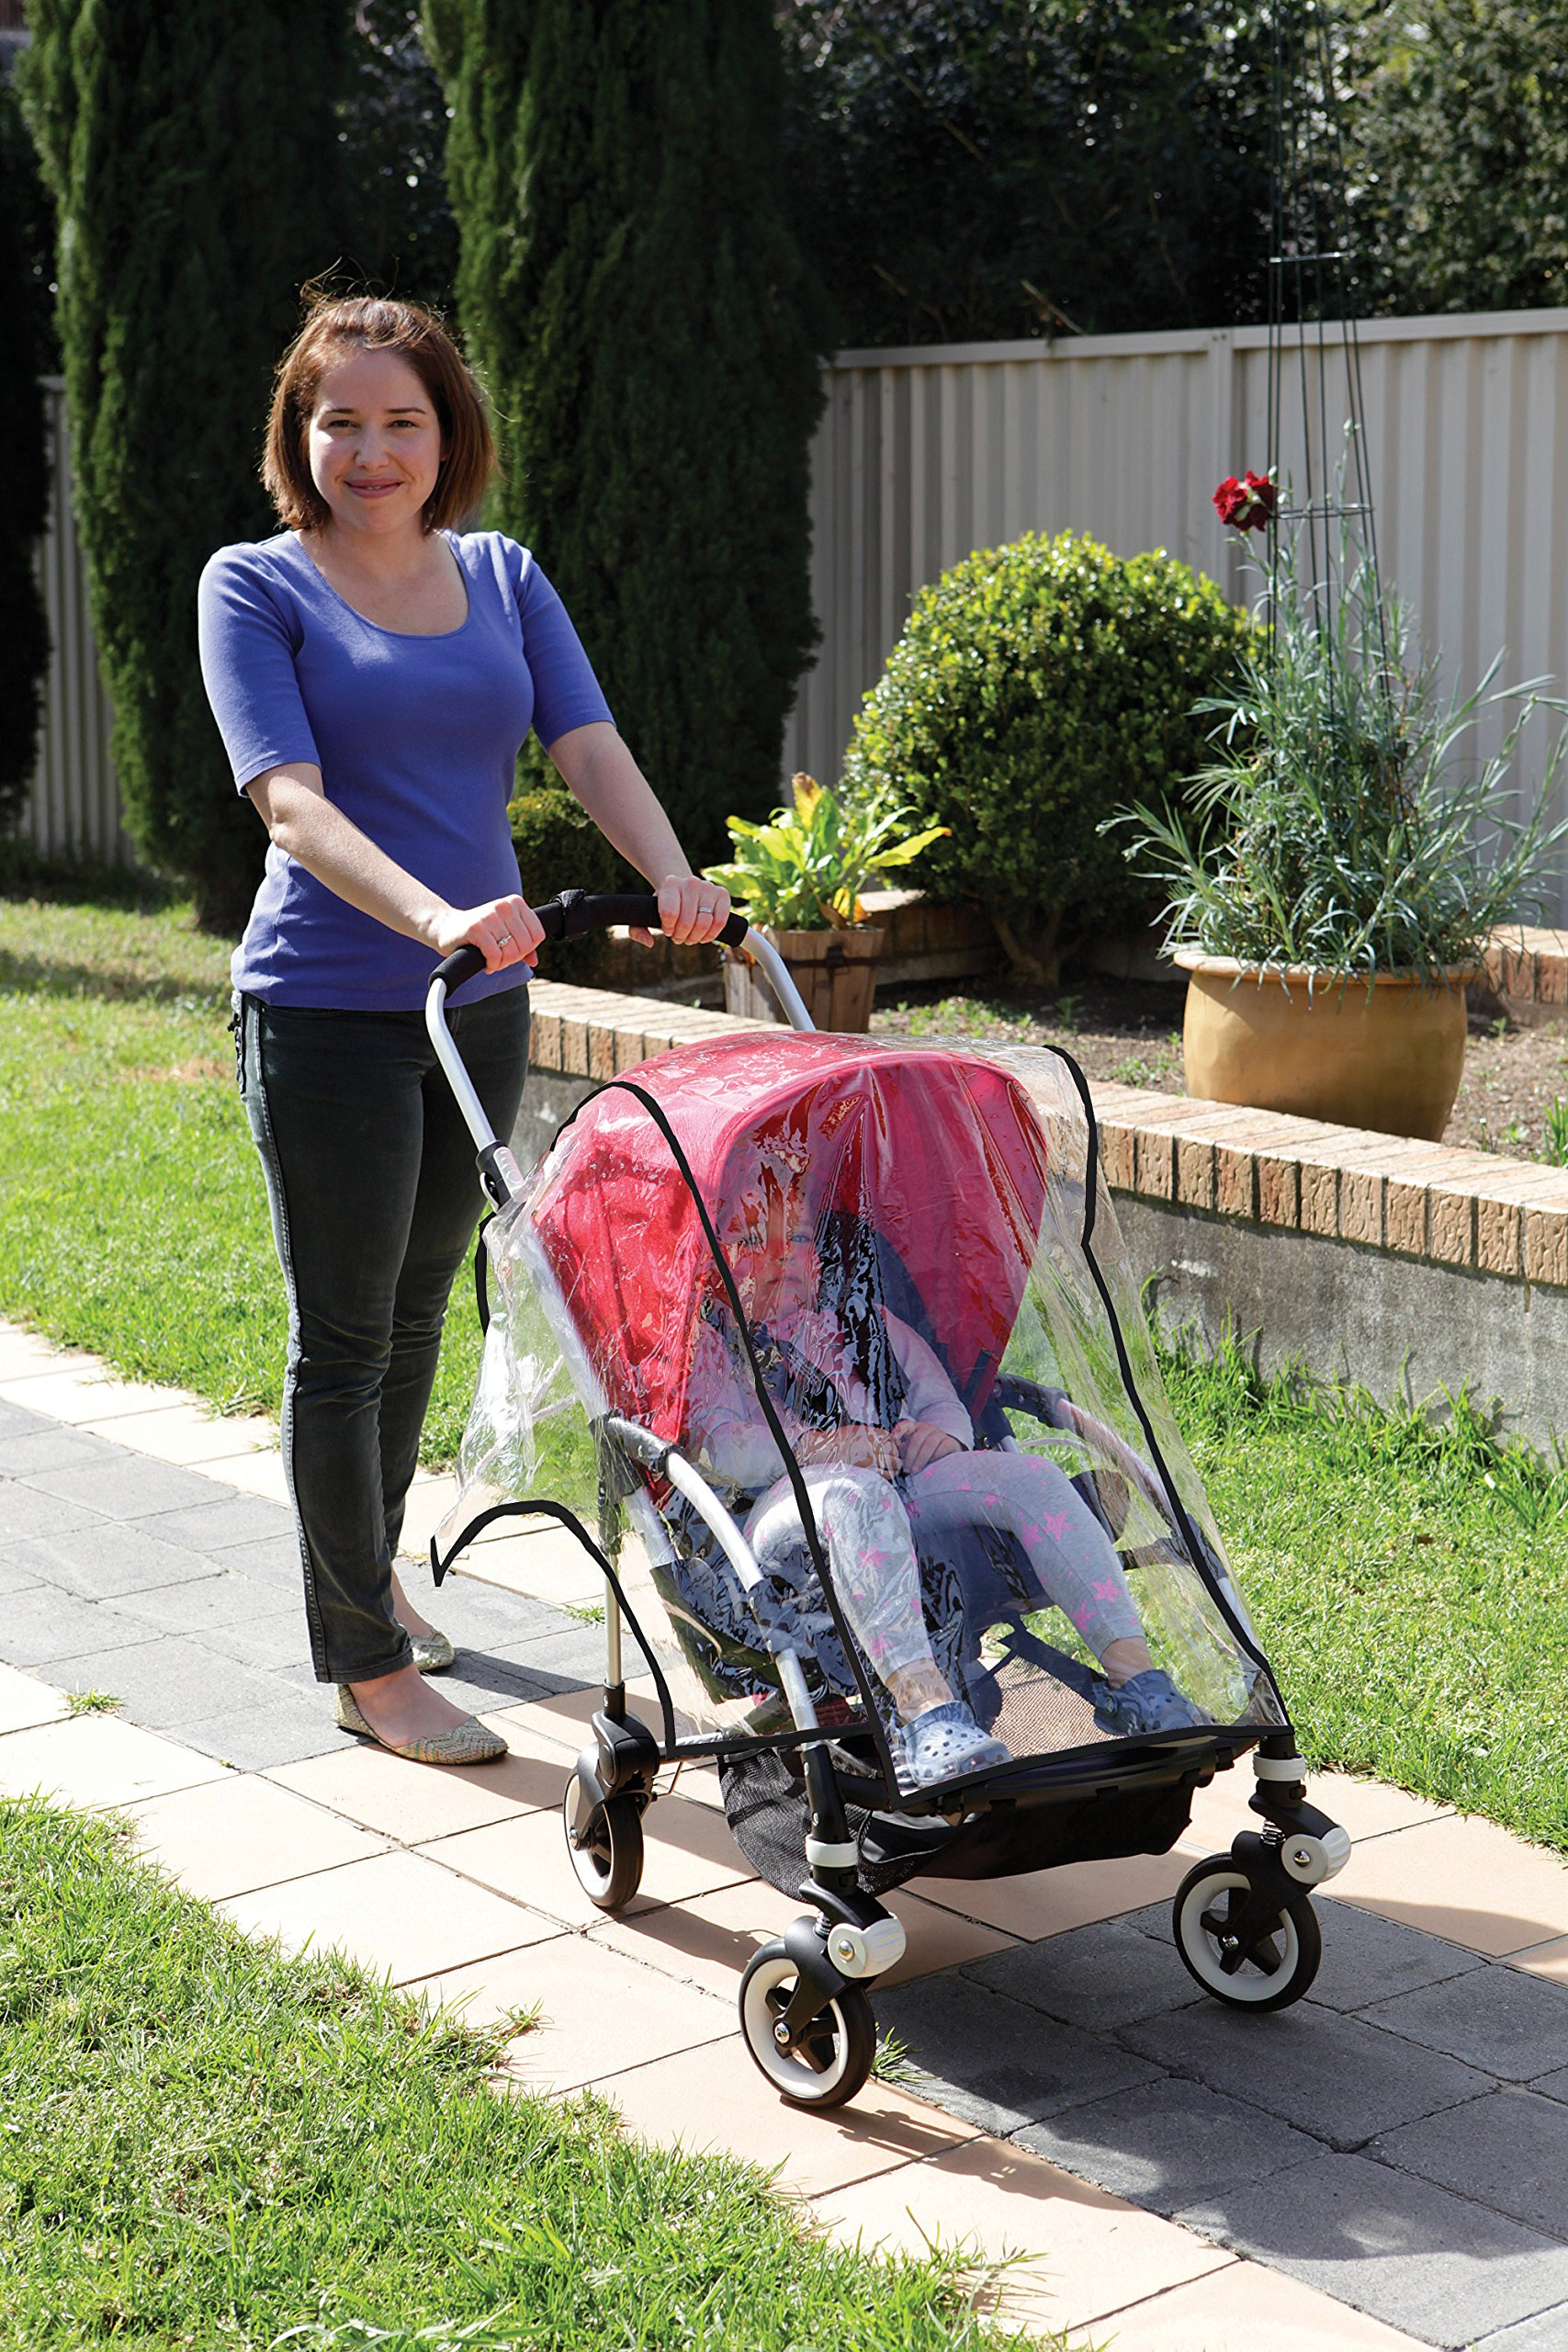 Dreambaby Stroller Weather Shade Dream Baby Transparent so that your child can still see out of the stroller clearly Made of a flexible plastic which is easy to wipe clean and dry off Fits most standard sized hooded strollers 2